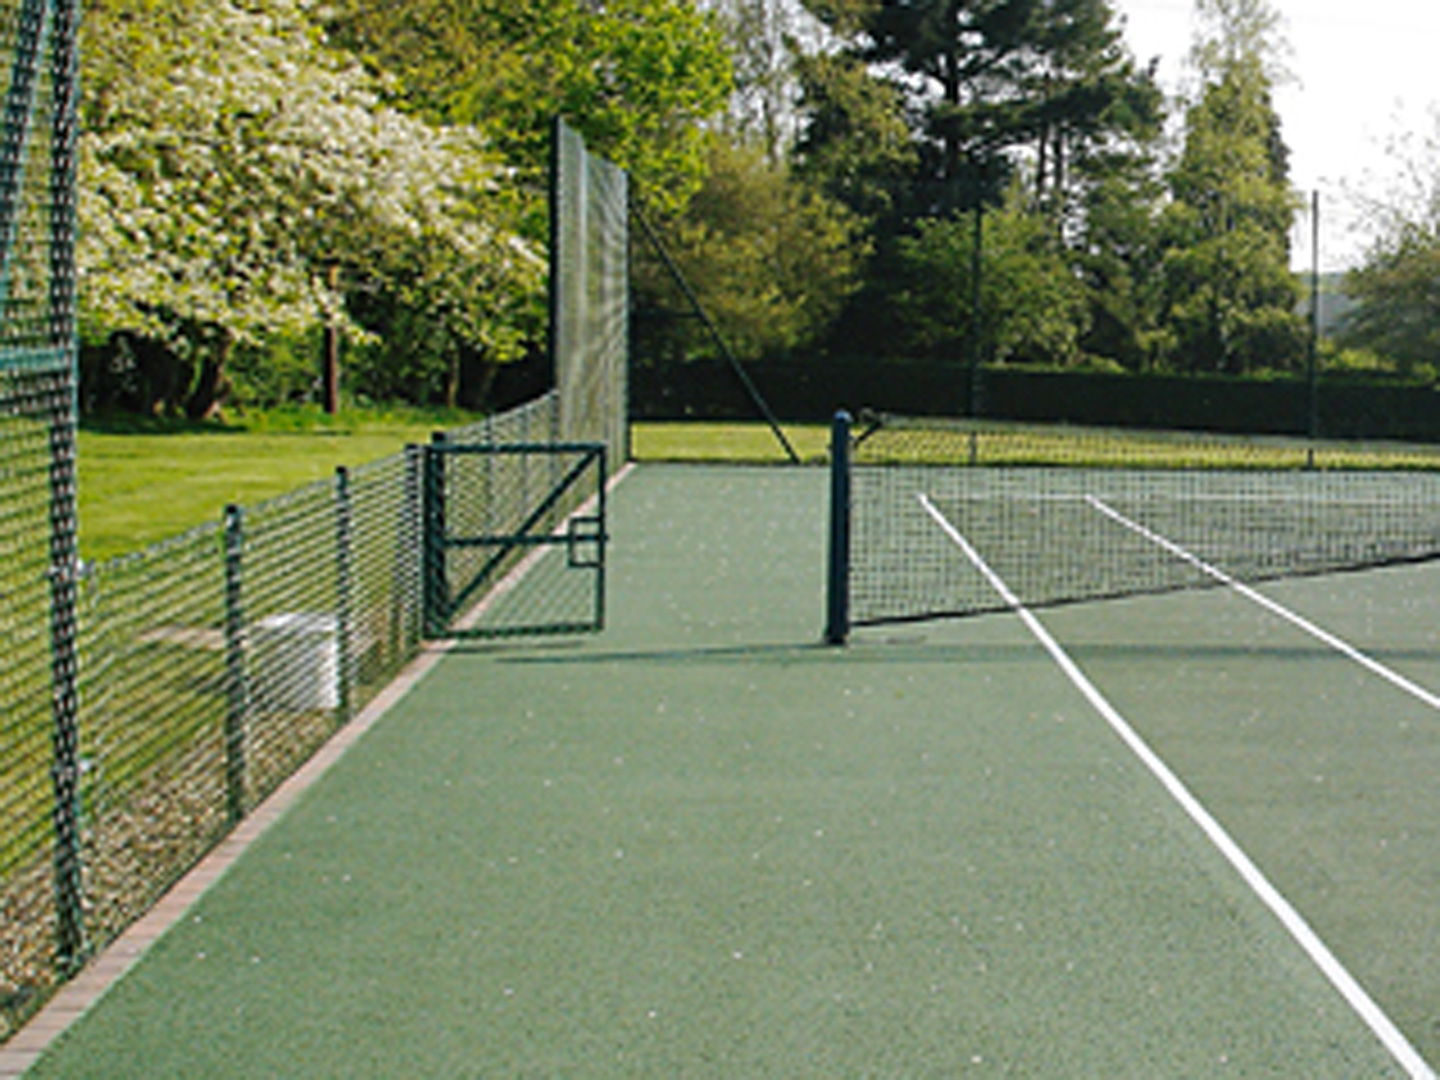 Tennis Court Fencing Detail